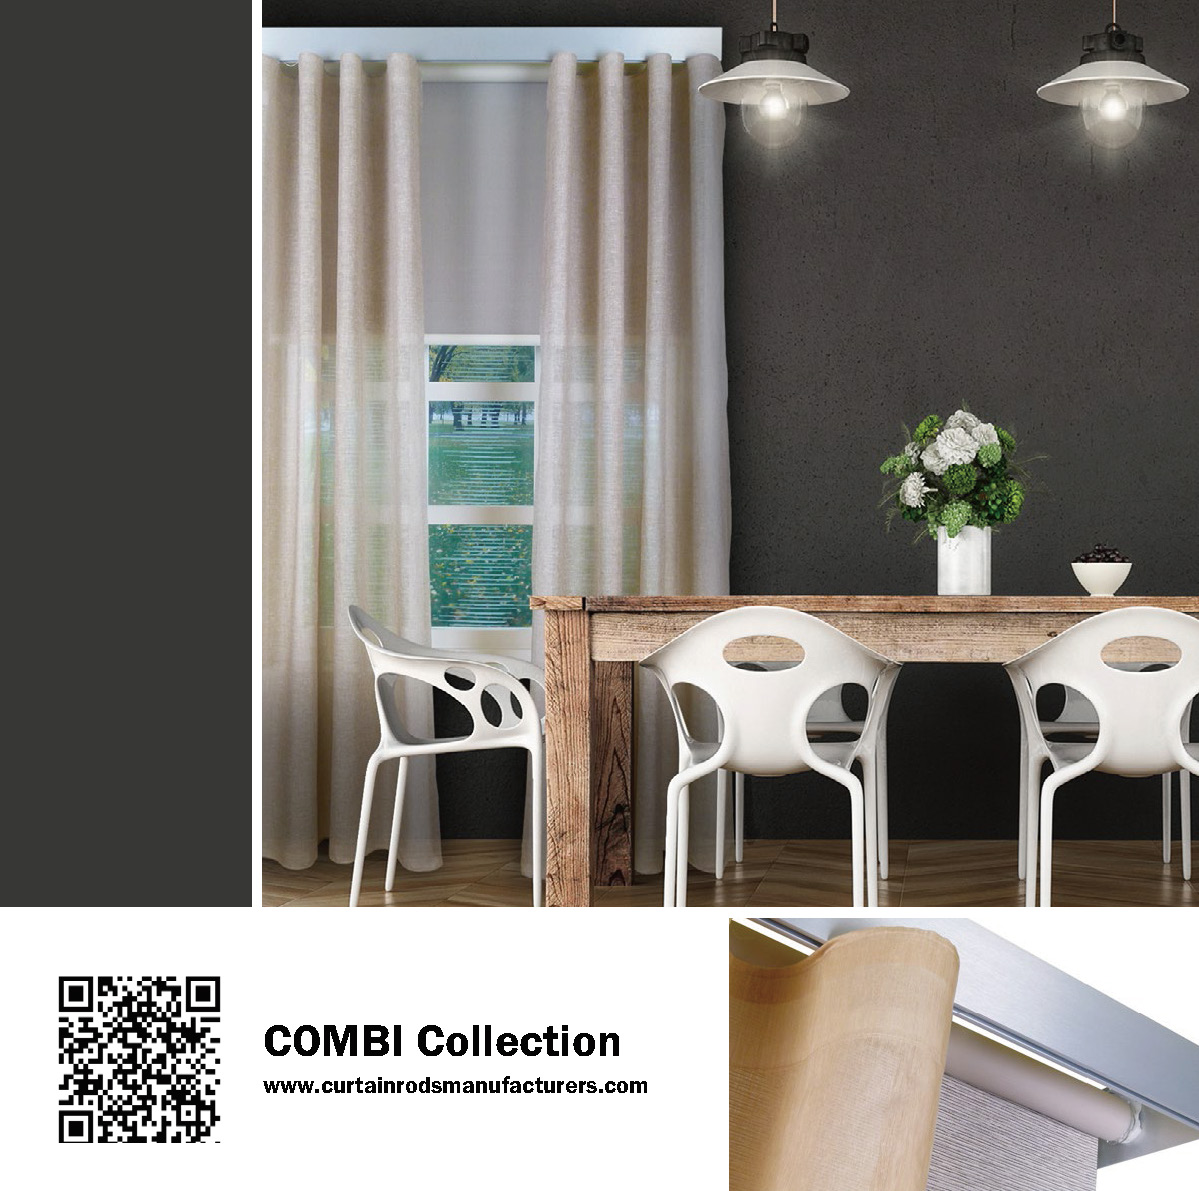 Combi Collection